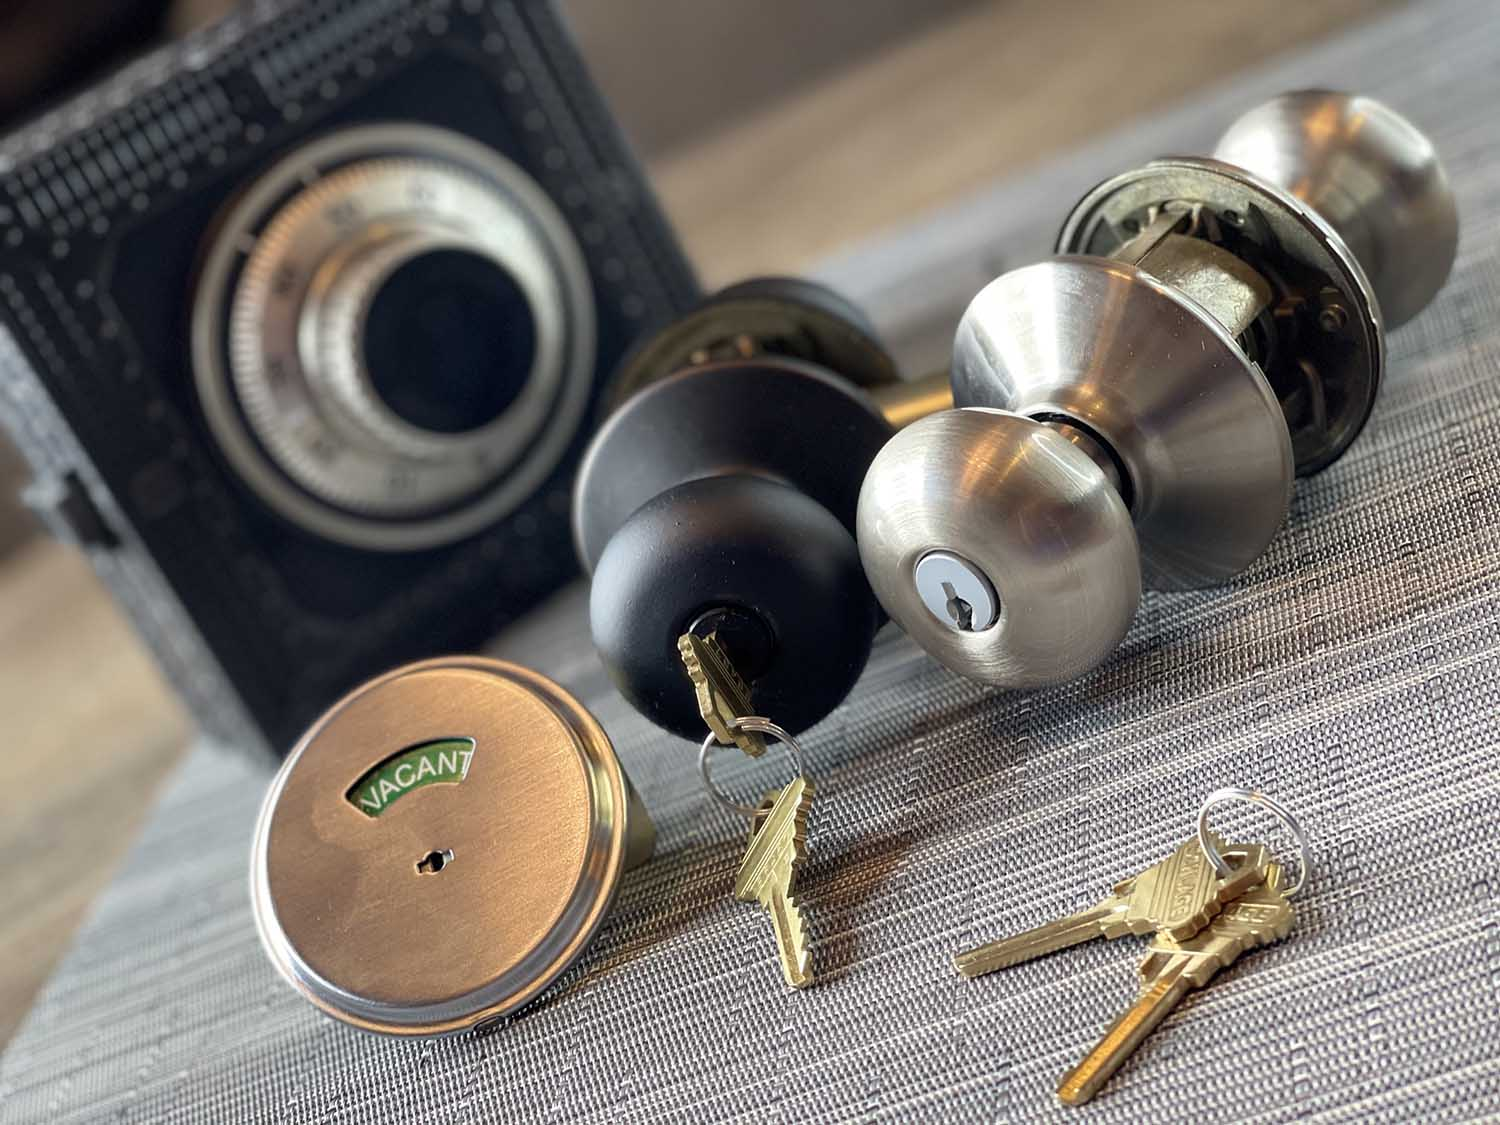 lock repair and replacement services - 24/7 Locksmith